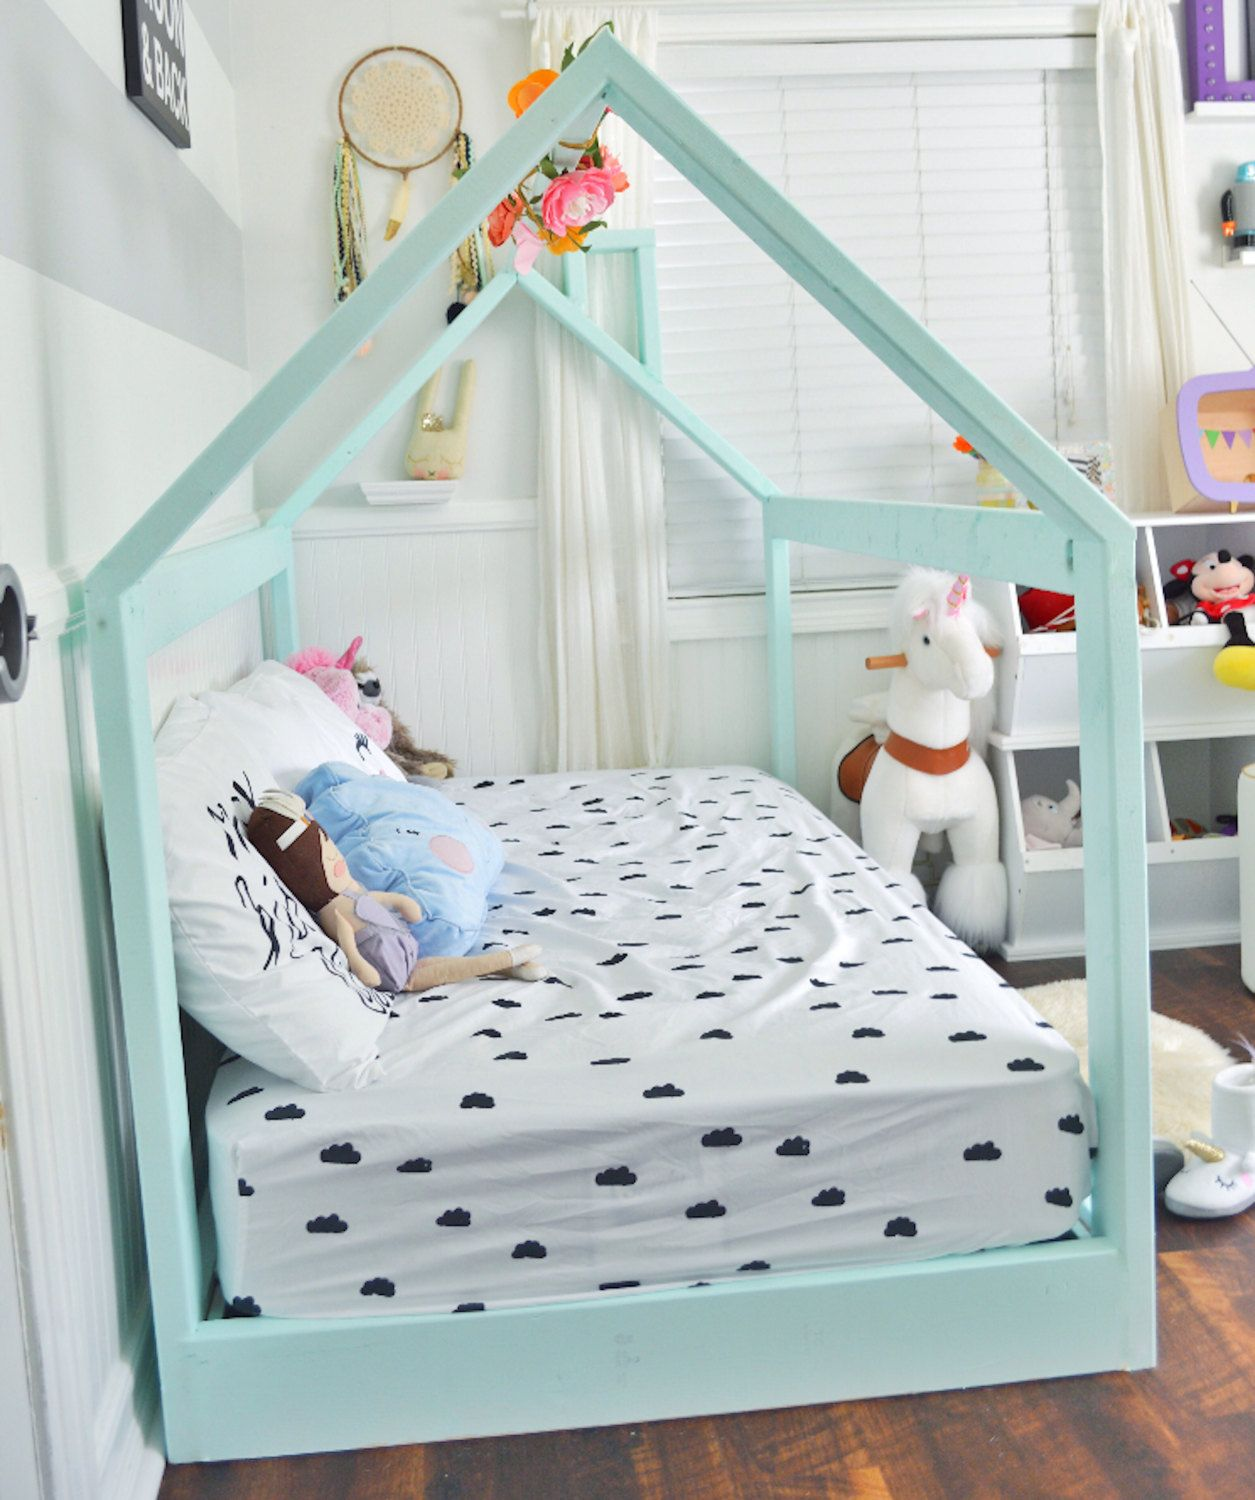 full size house bed frame made in us in 2019 house ideas bed rh pinterest com